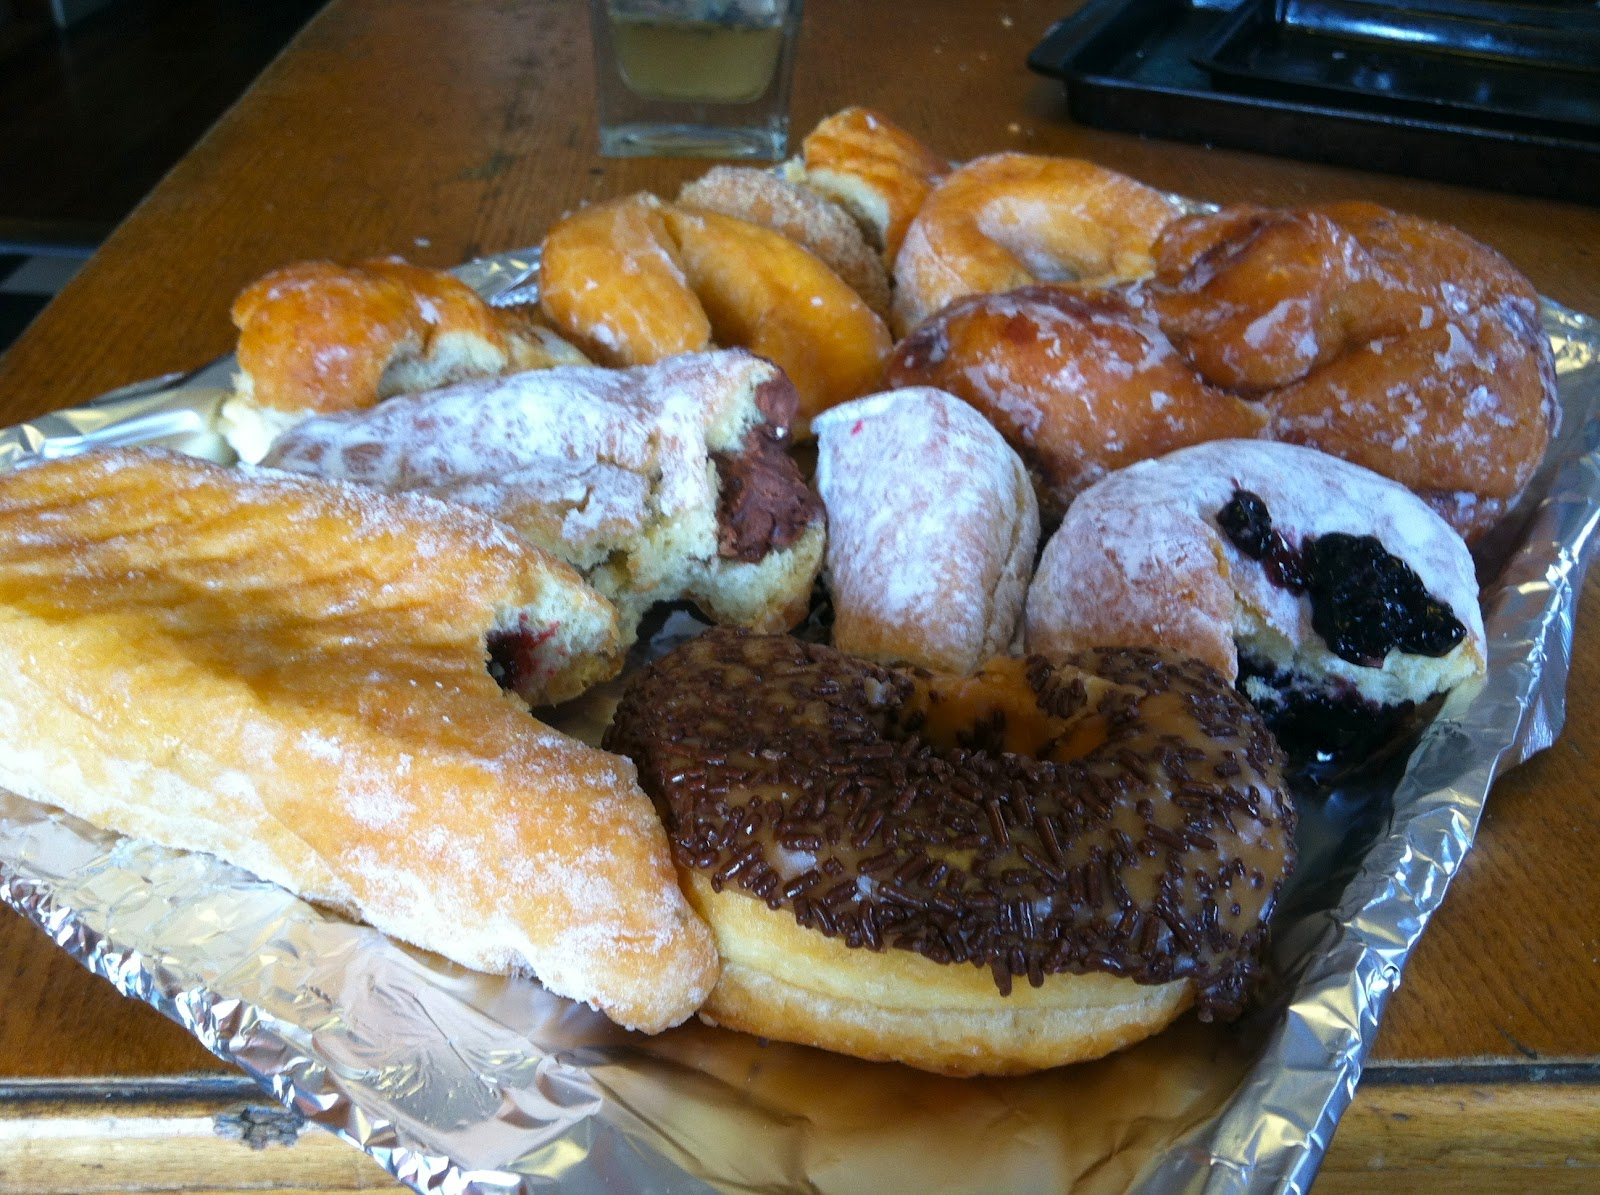 The loaves and fishes-like amount of donuts my original $5 had purchased  and that remained after my initial feasting.